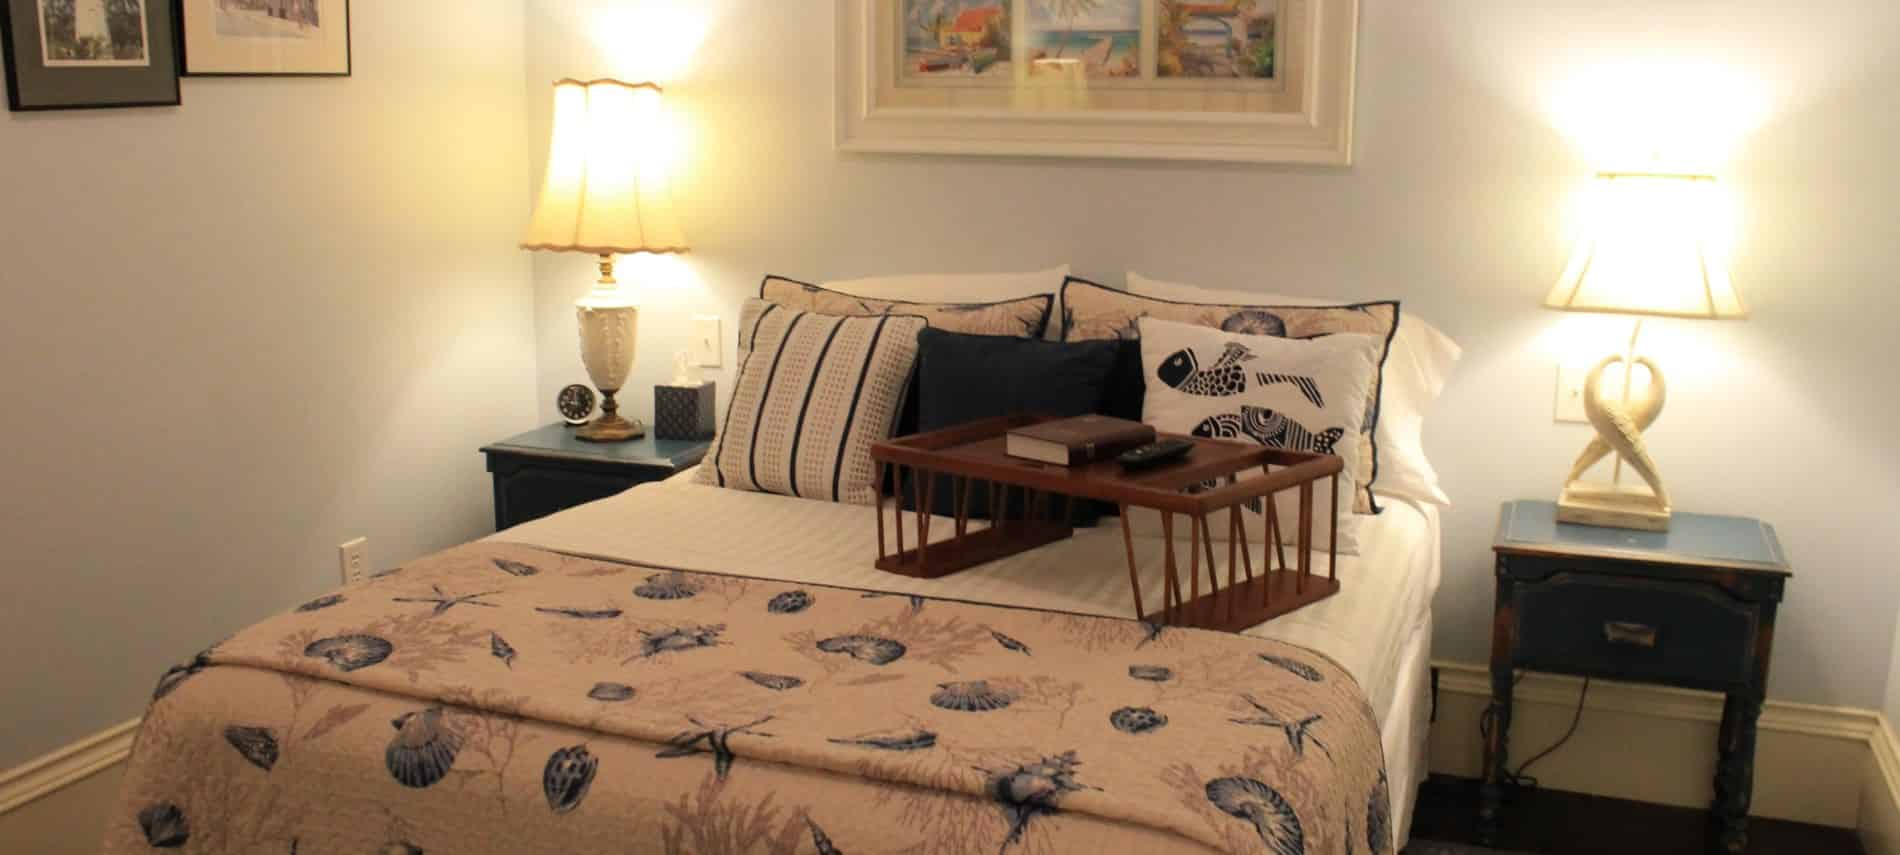 Key West guest room, bedding with seashells, two nightstands with lamps, tray with book and remote, beach photo collage on wall